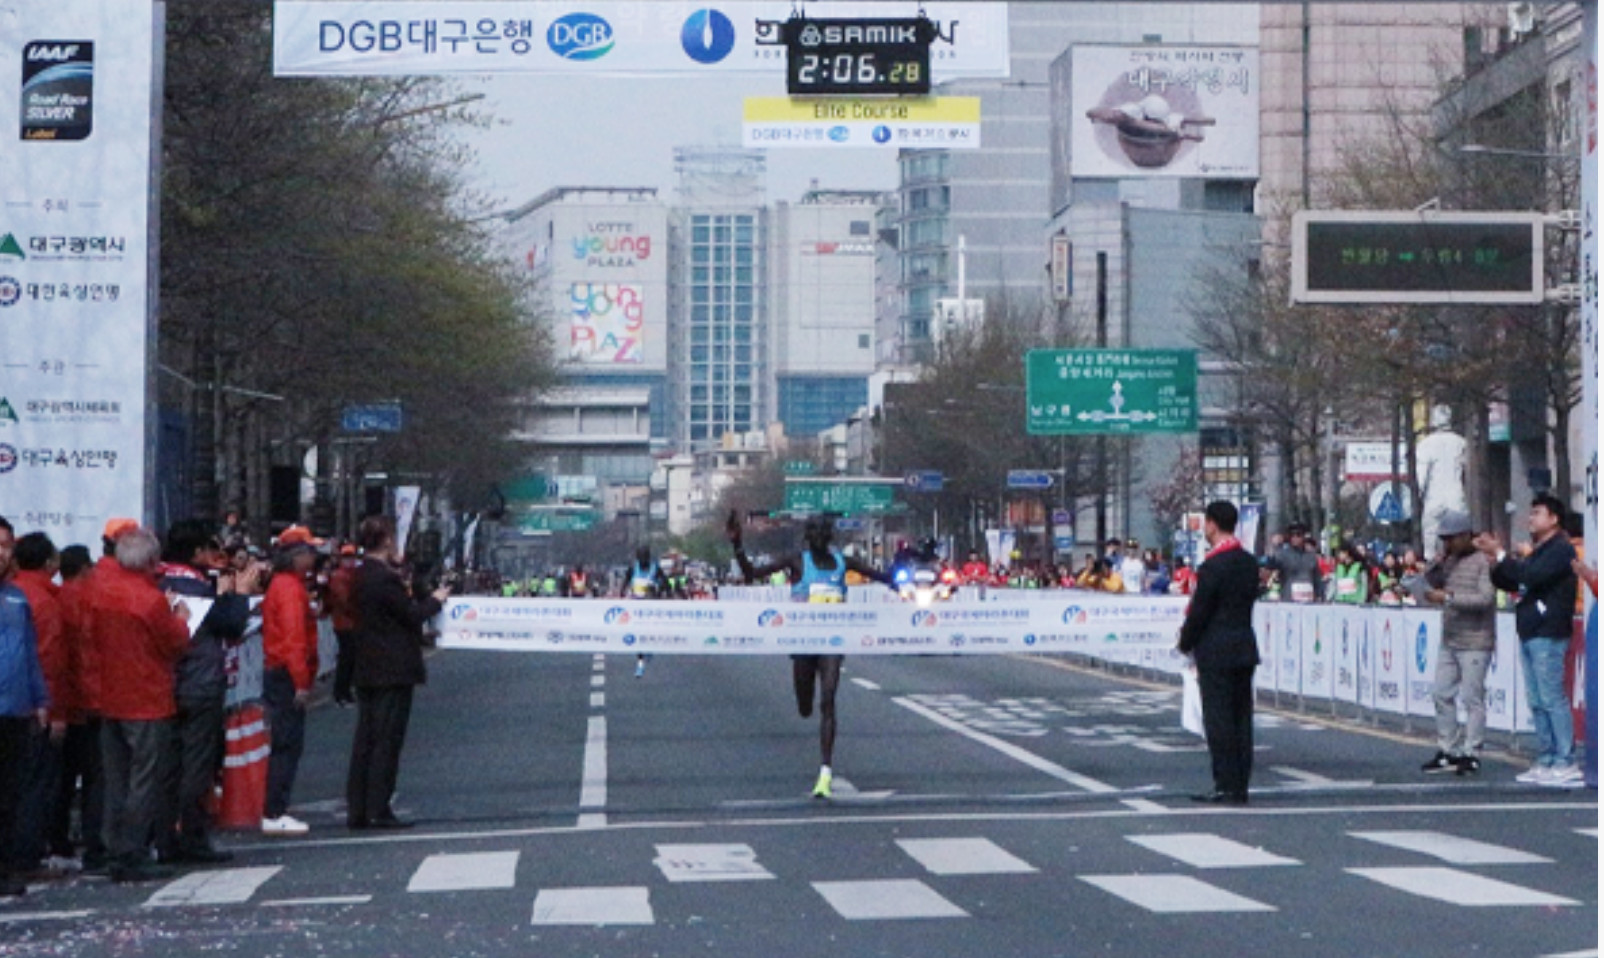 Course record was smashed at the Daegu Marathon as Kipchirchir clocked 2:05:33